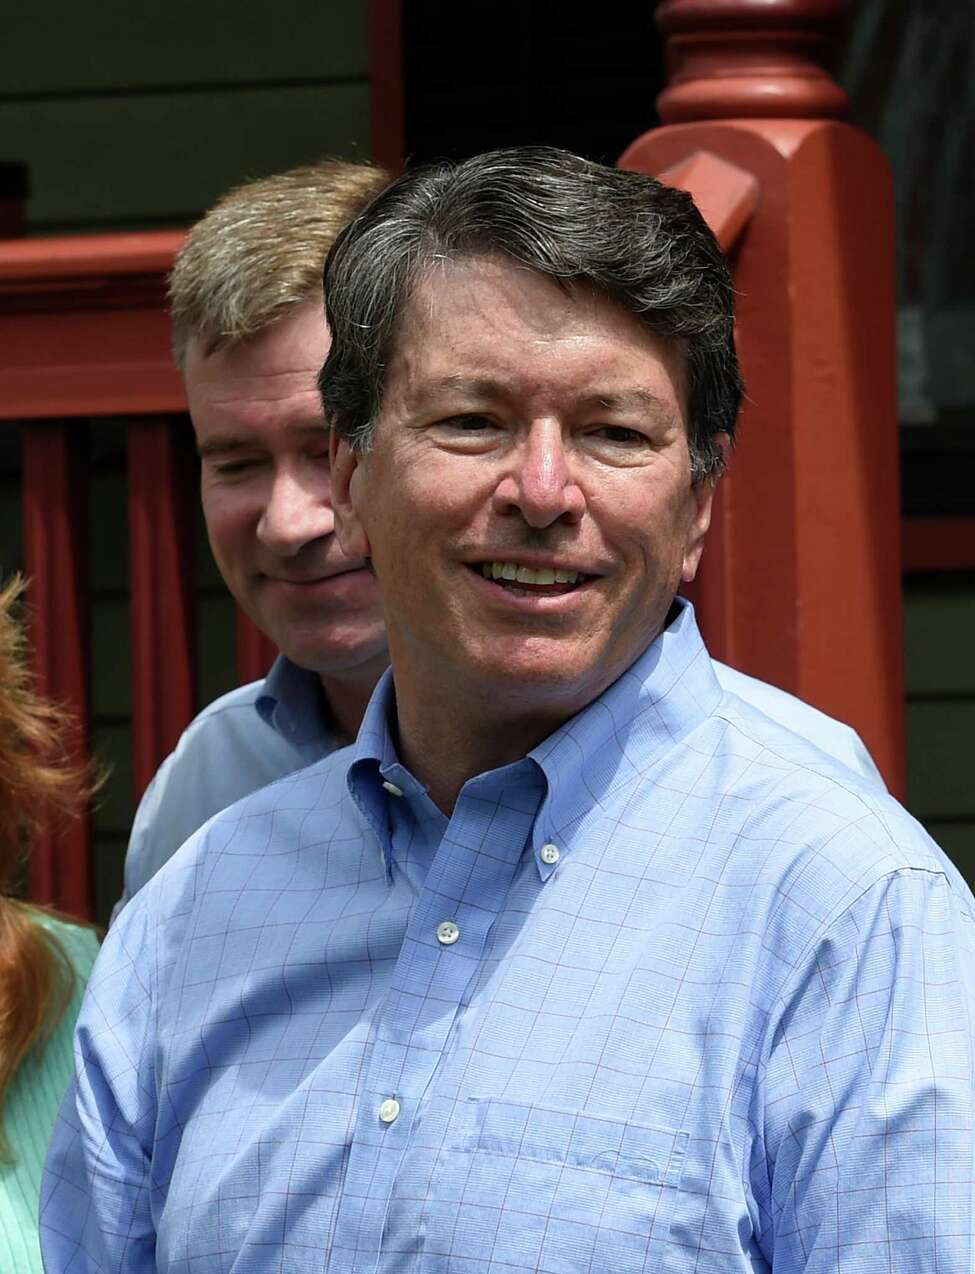 John Faso accepts the endorsement of U.S. Rep. Chris Gibson, background, for his seat in Congress on Monday, July 18, 2016, outside Gibson's home in Kinderhook, N.Y. (Skip Dickstein/Times Union)